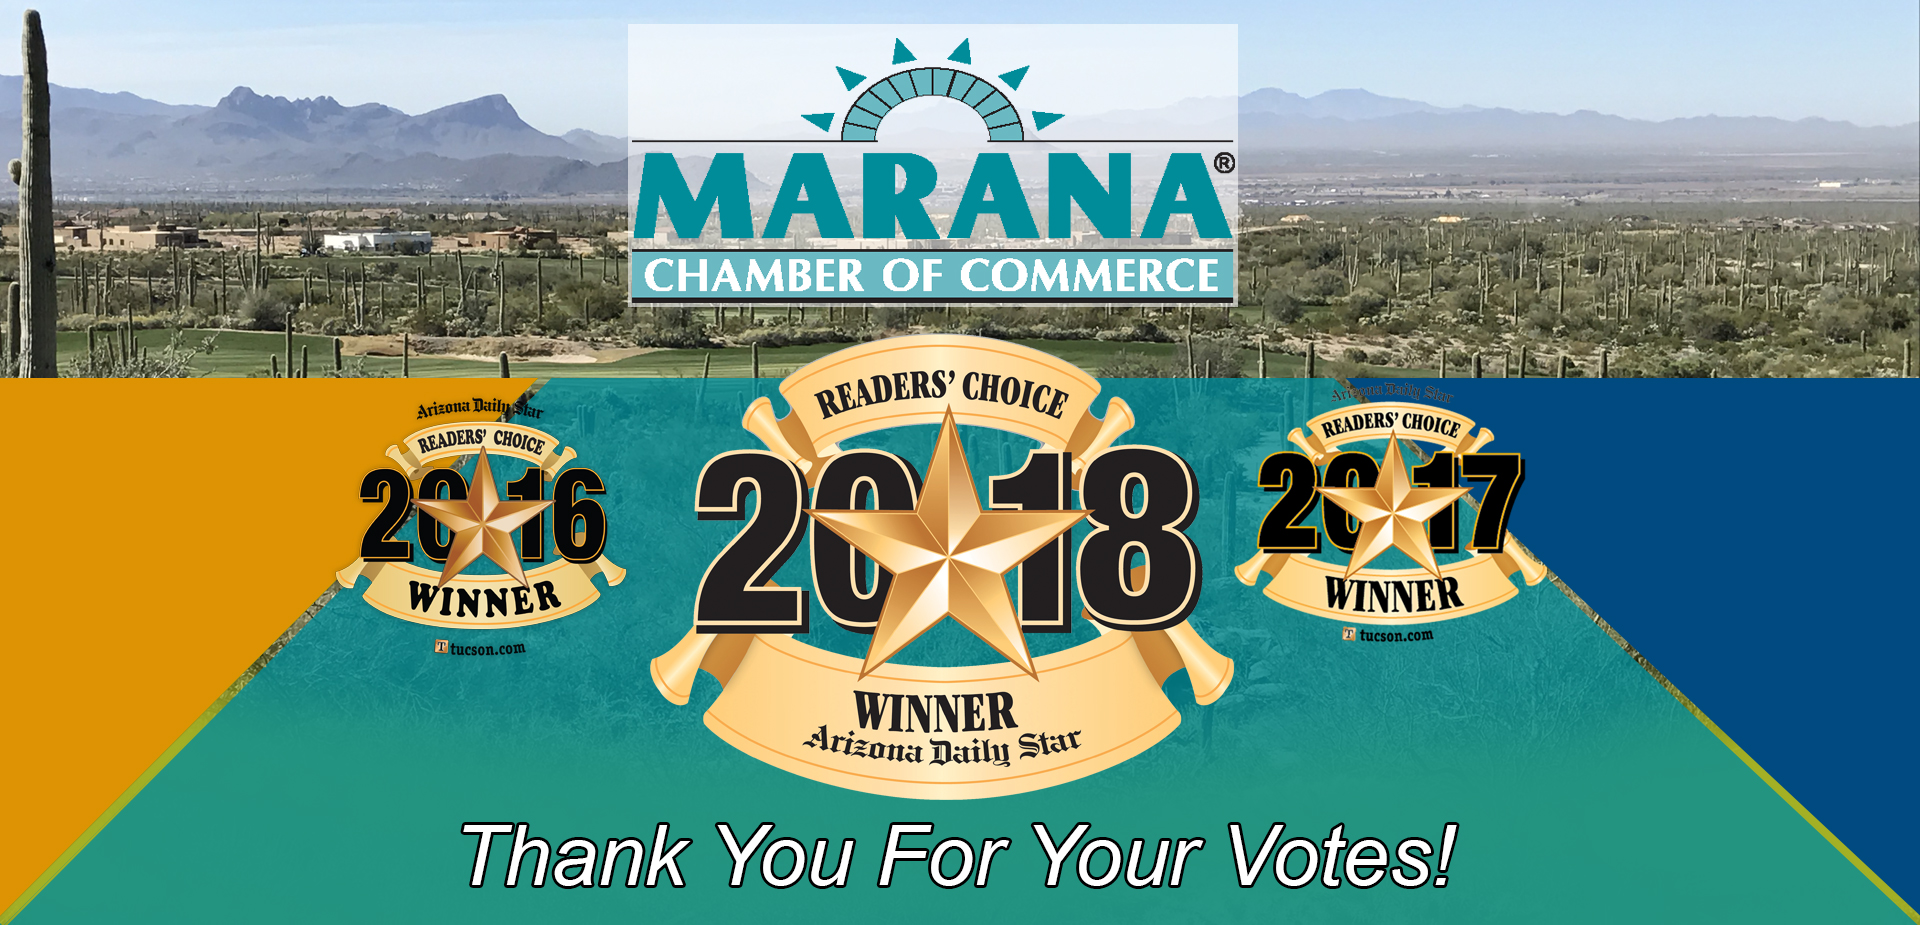 Marana Chamber of Commerce Slide 2017